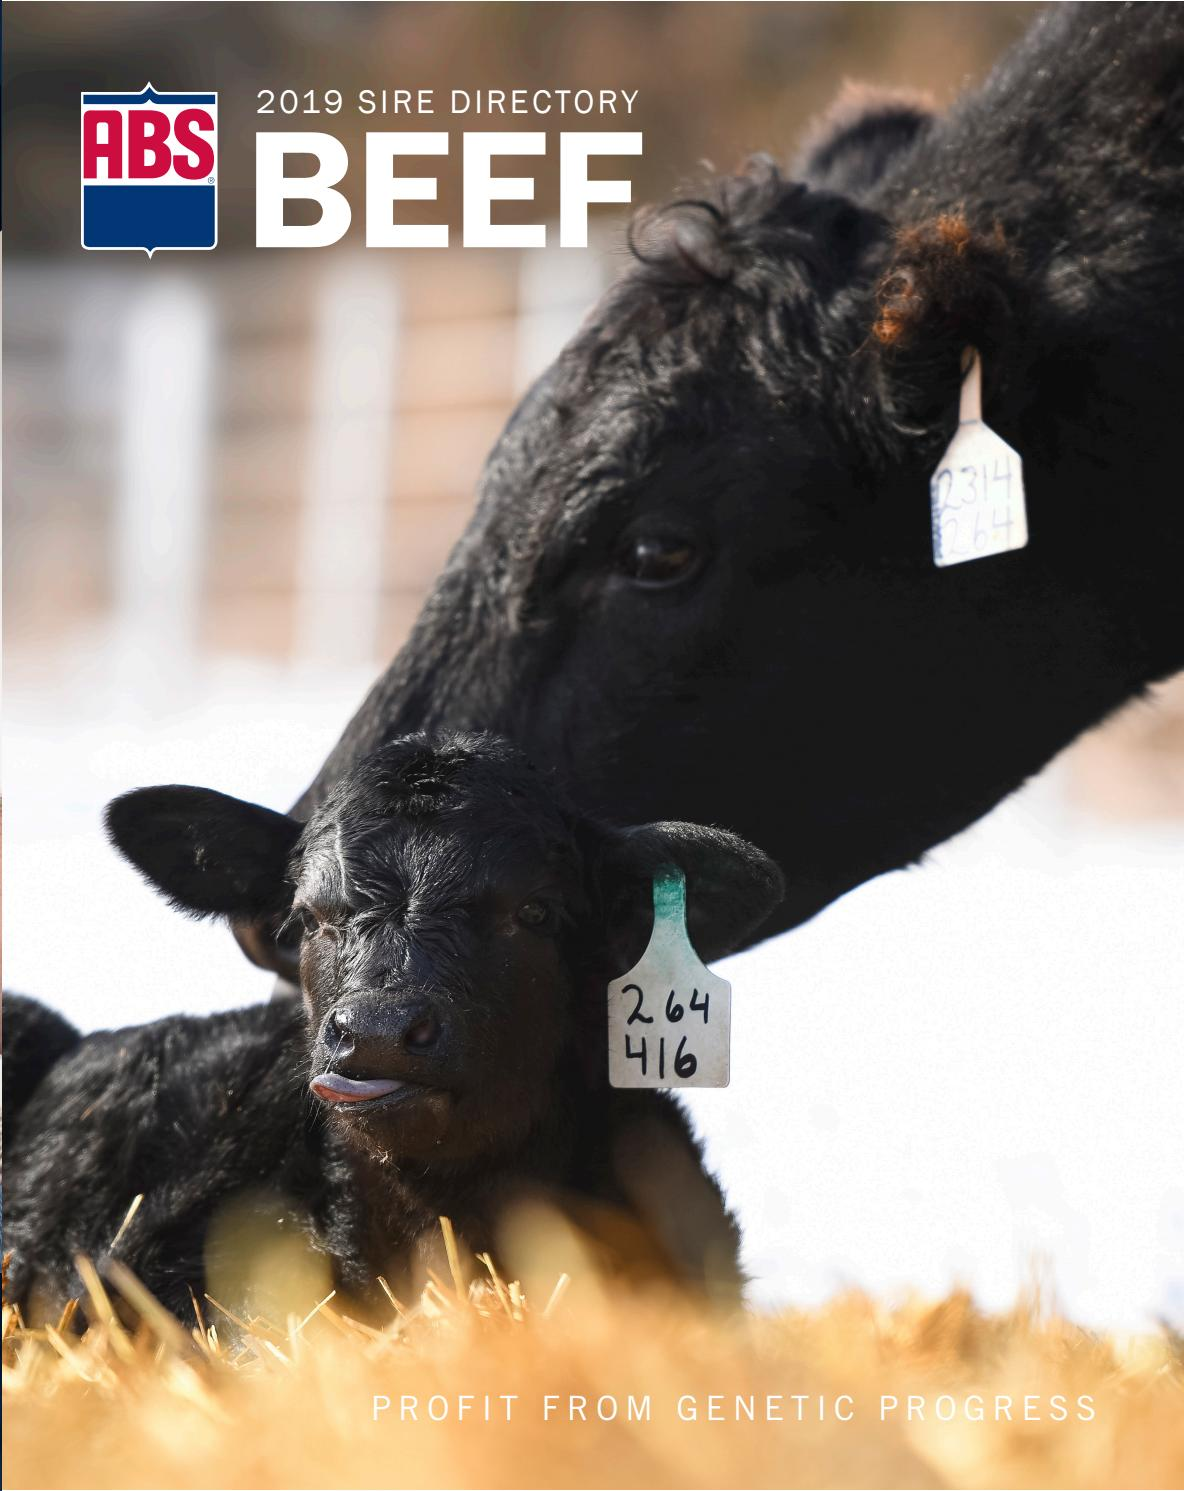 2019 US Beef Sire Directory by ABS Global, Inc  - issuu